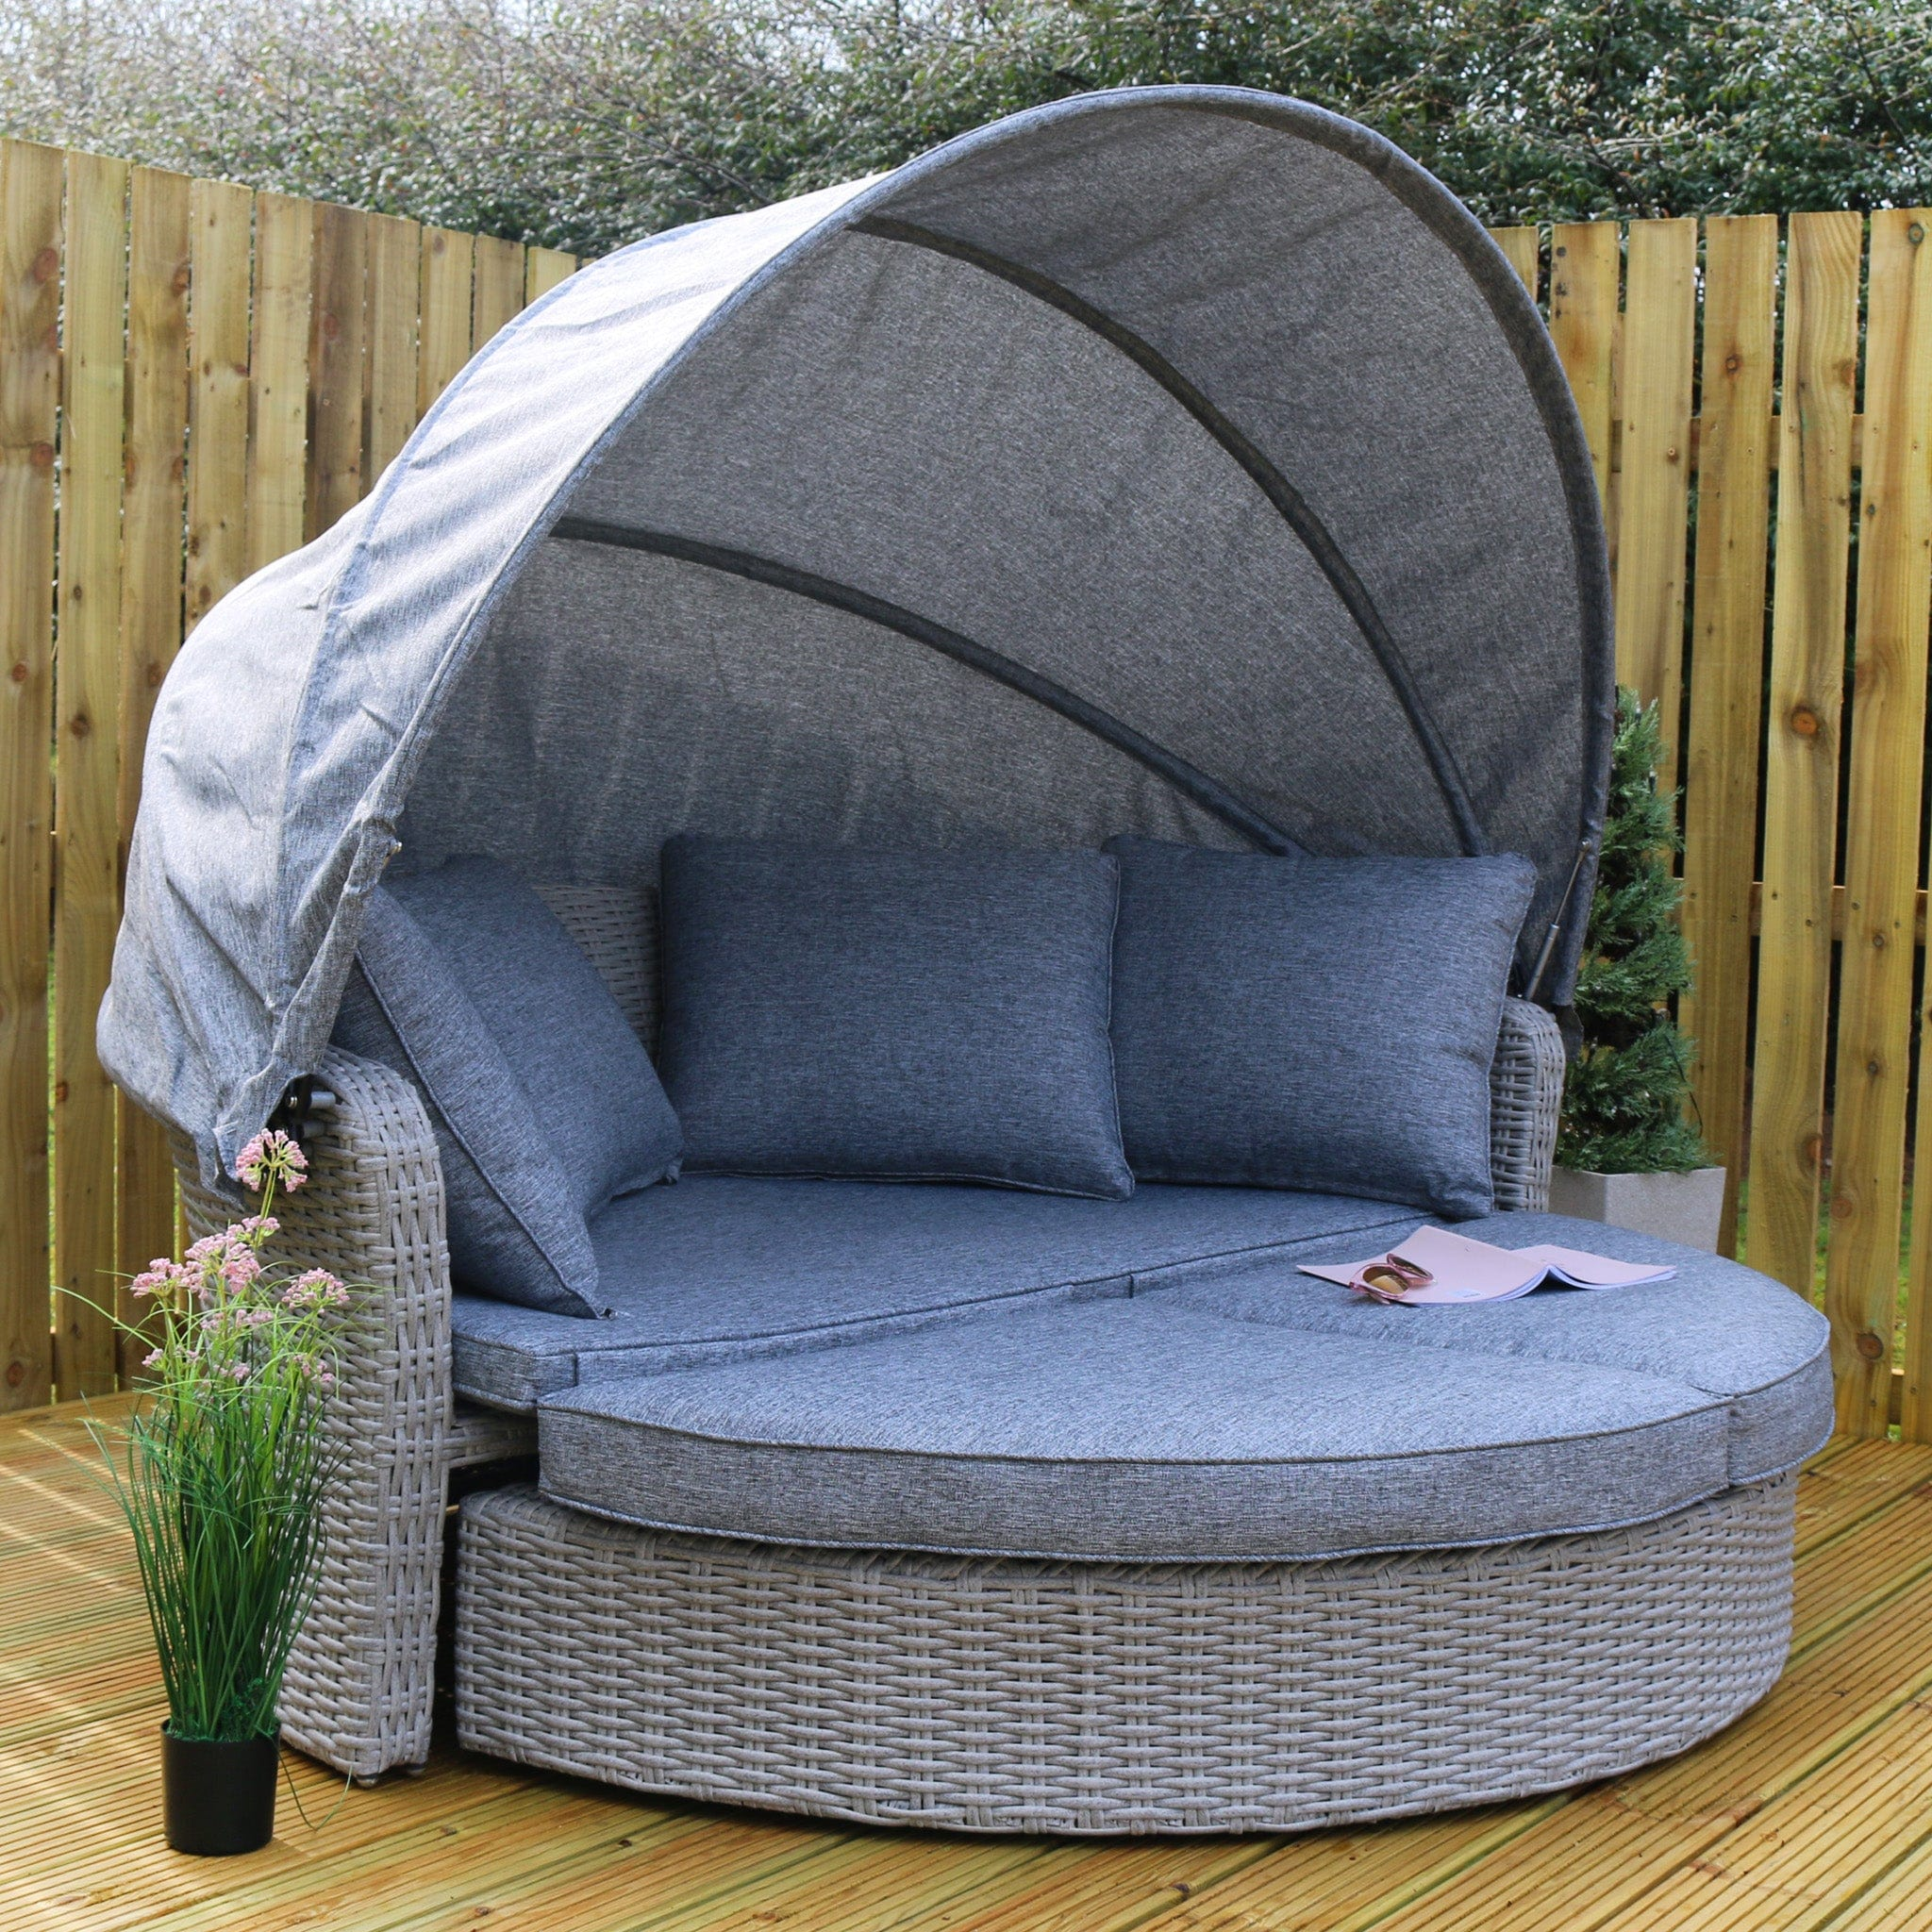 Buy Milan Grey Rattan Day Bed Sofa Online Azuma Outdoor Azumaoutdoor